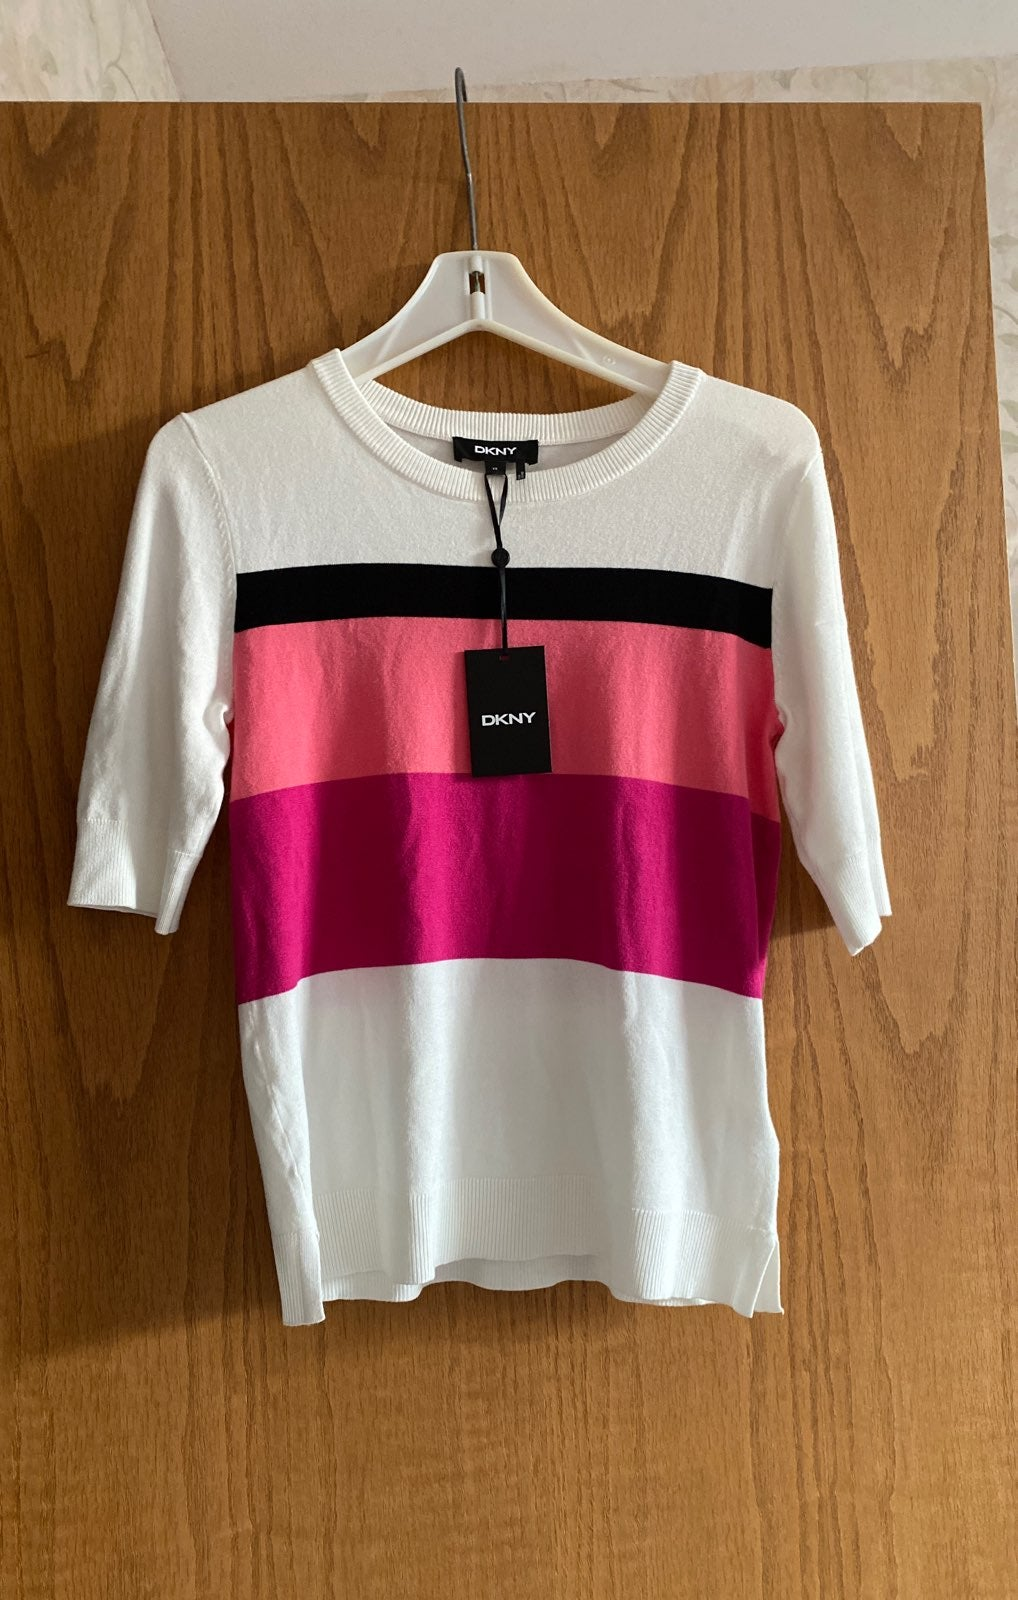 DKNY soft material new top!